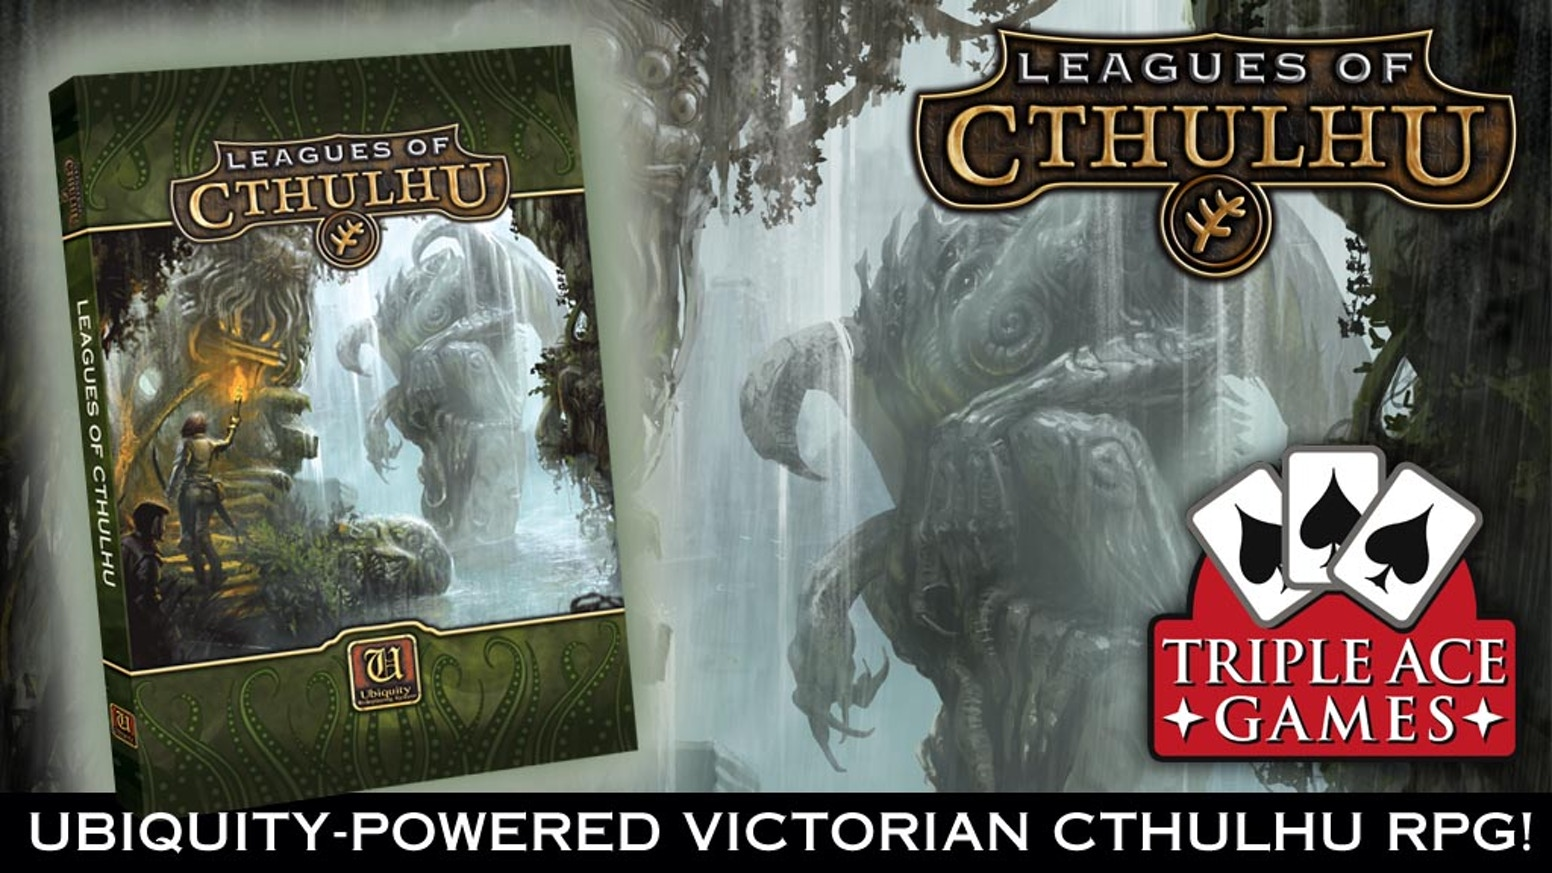 Explore the mind-bending world of Ubiquity-powered Victorian Cthulhu!